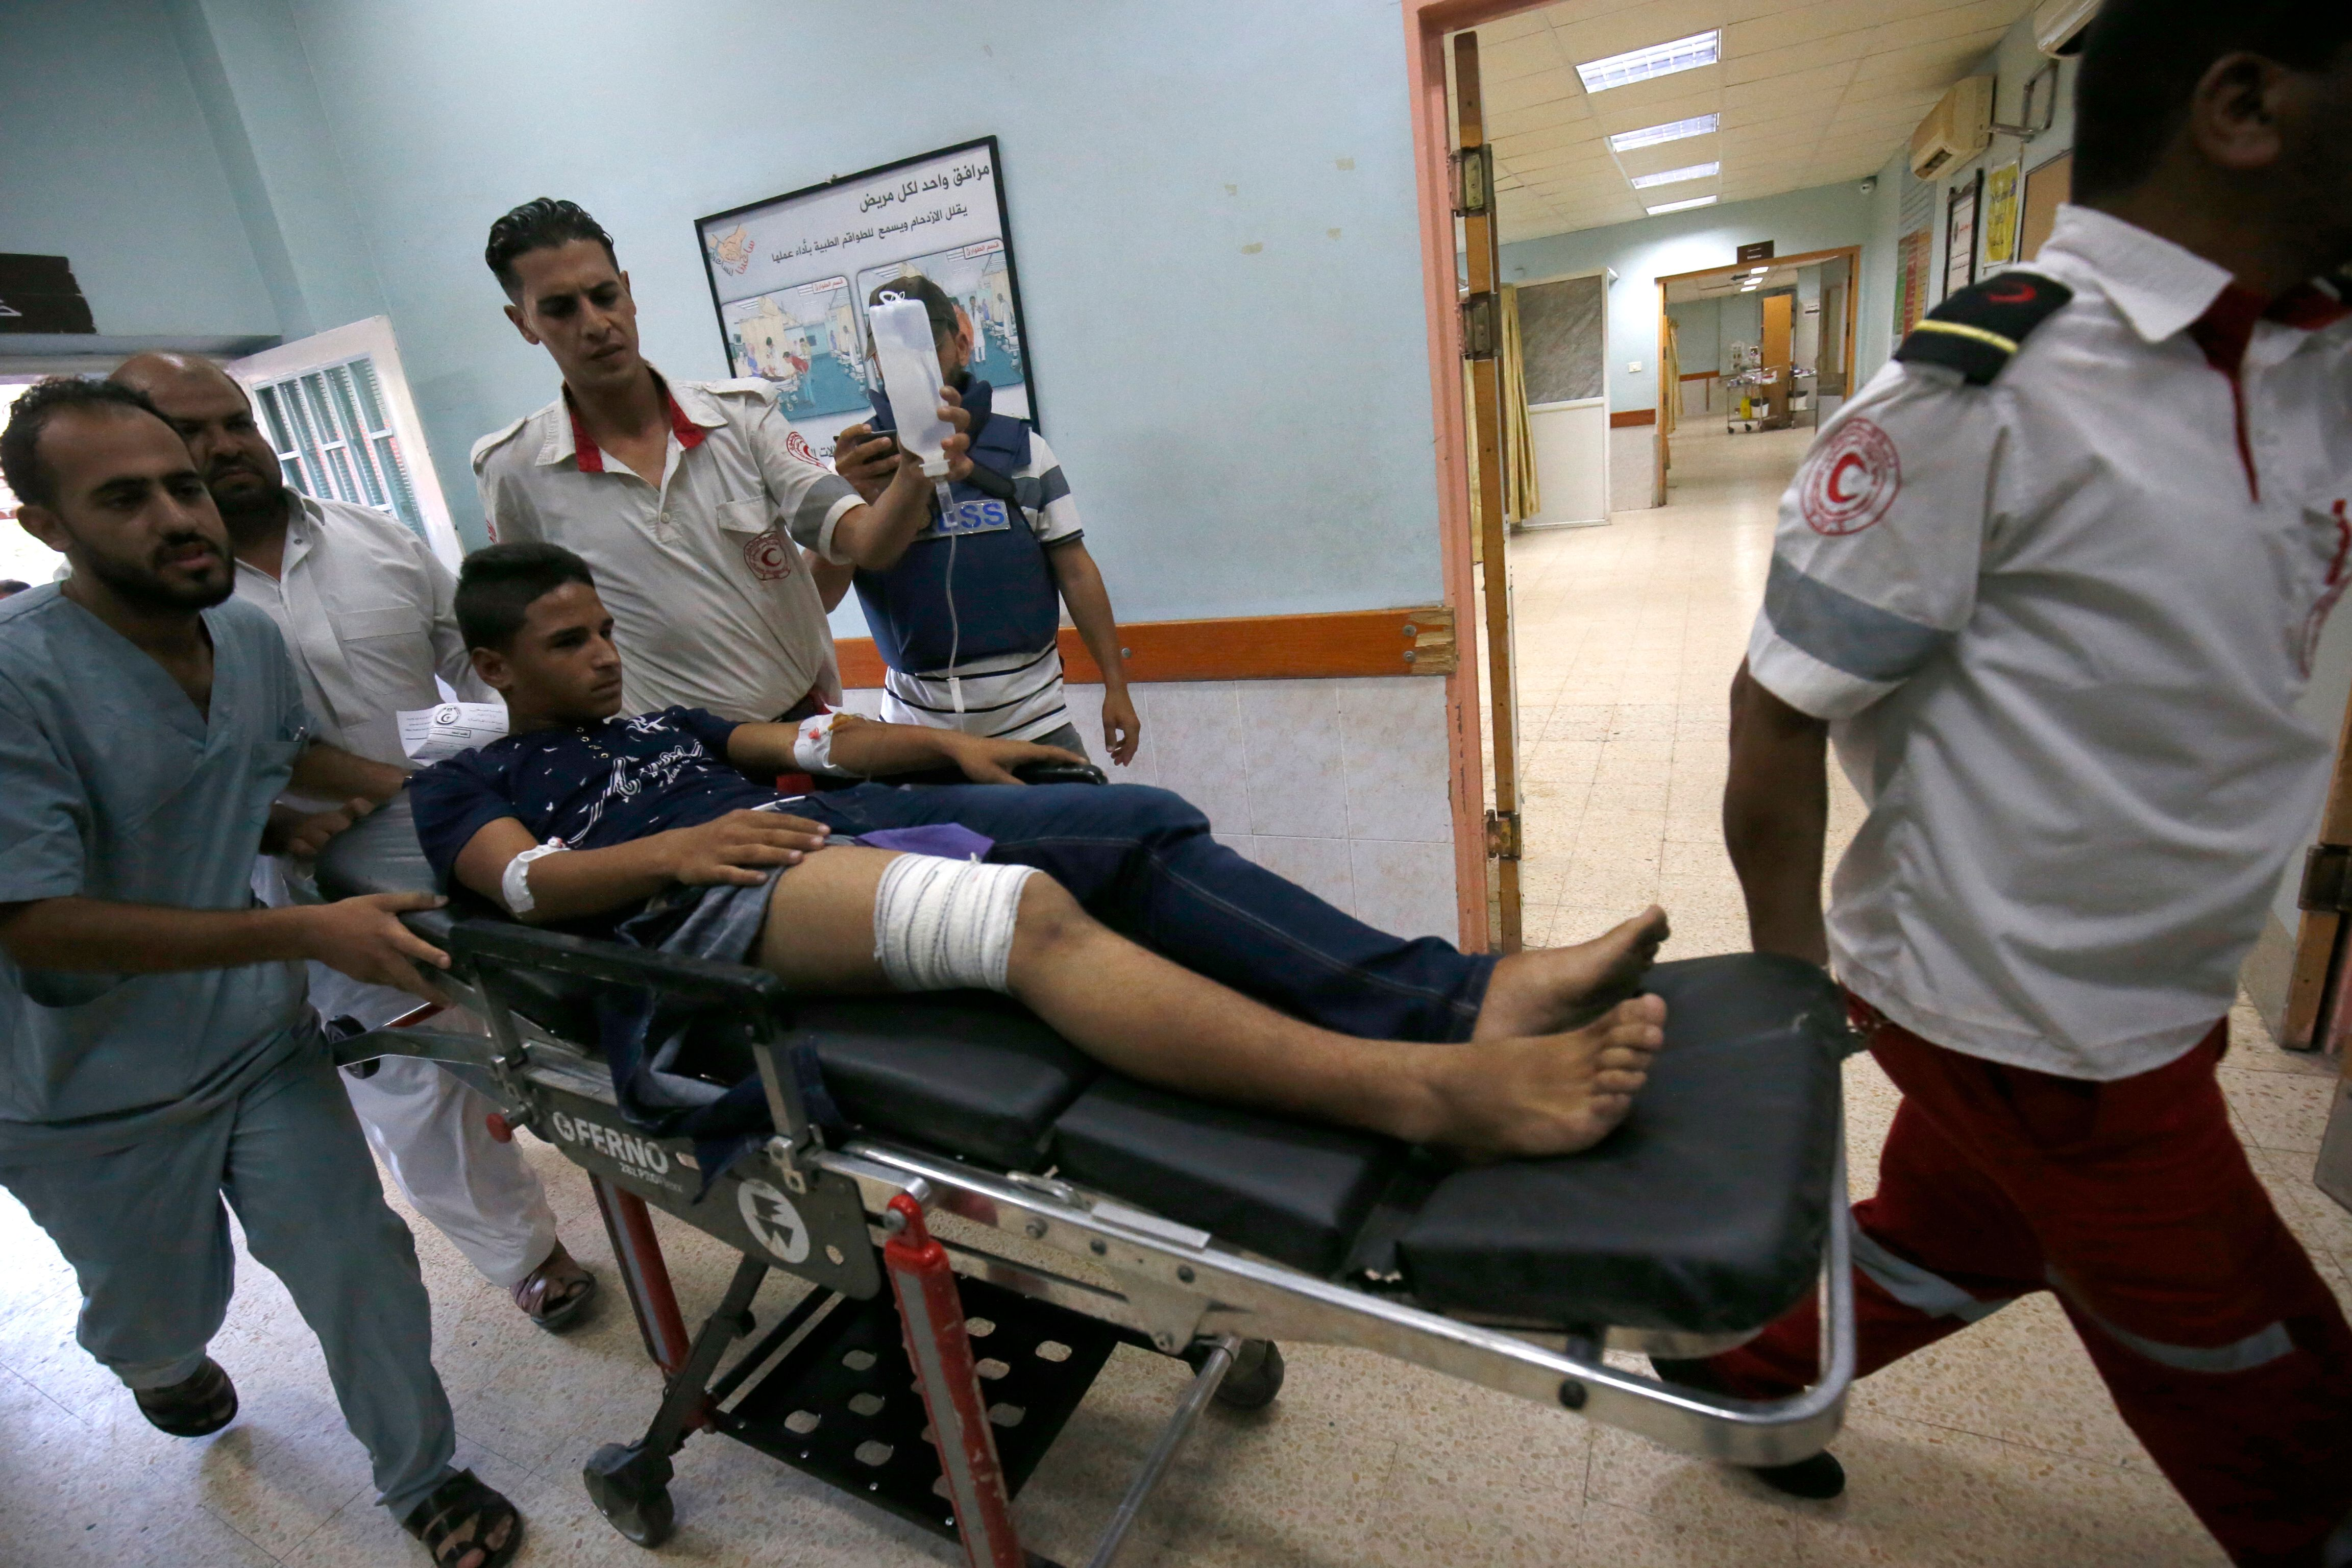 Israeli forces shot a Palestinian journalist in the leg. He got no compensation.